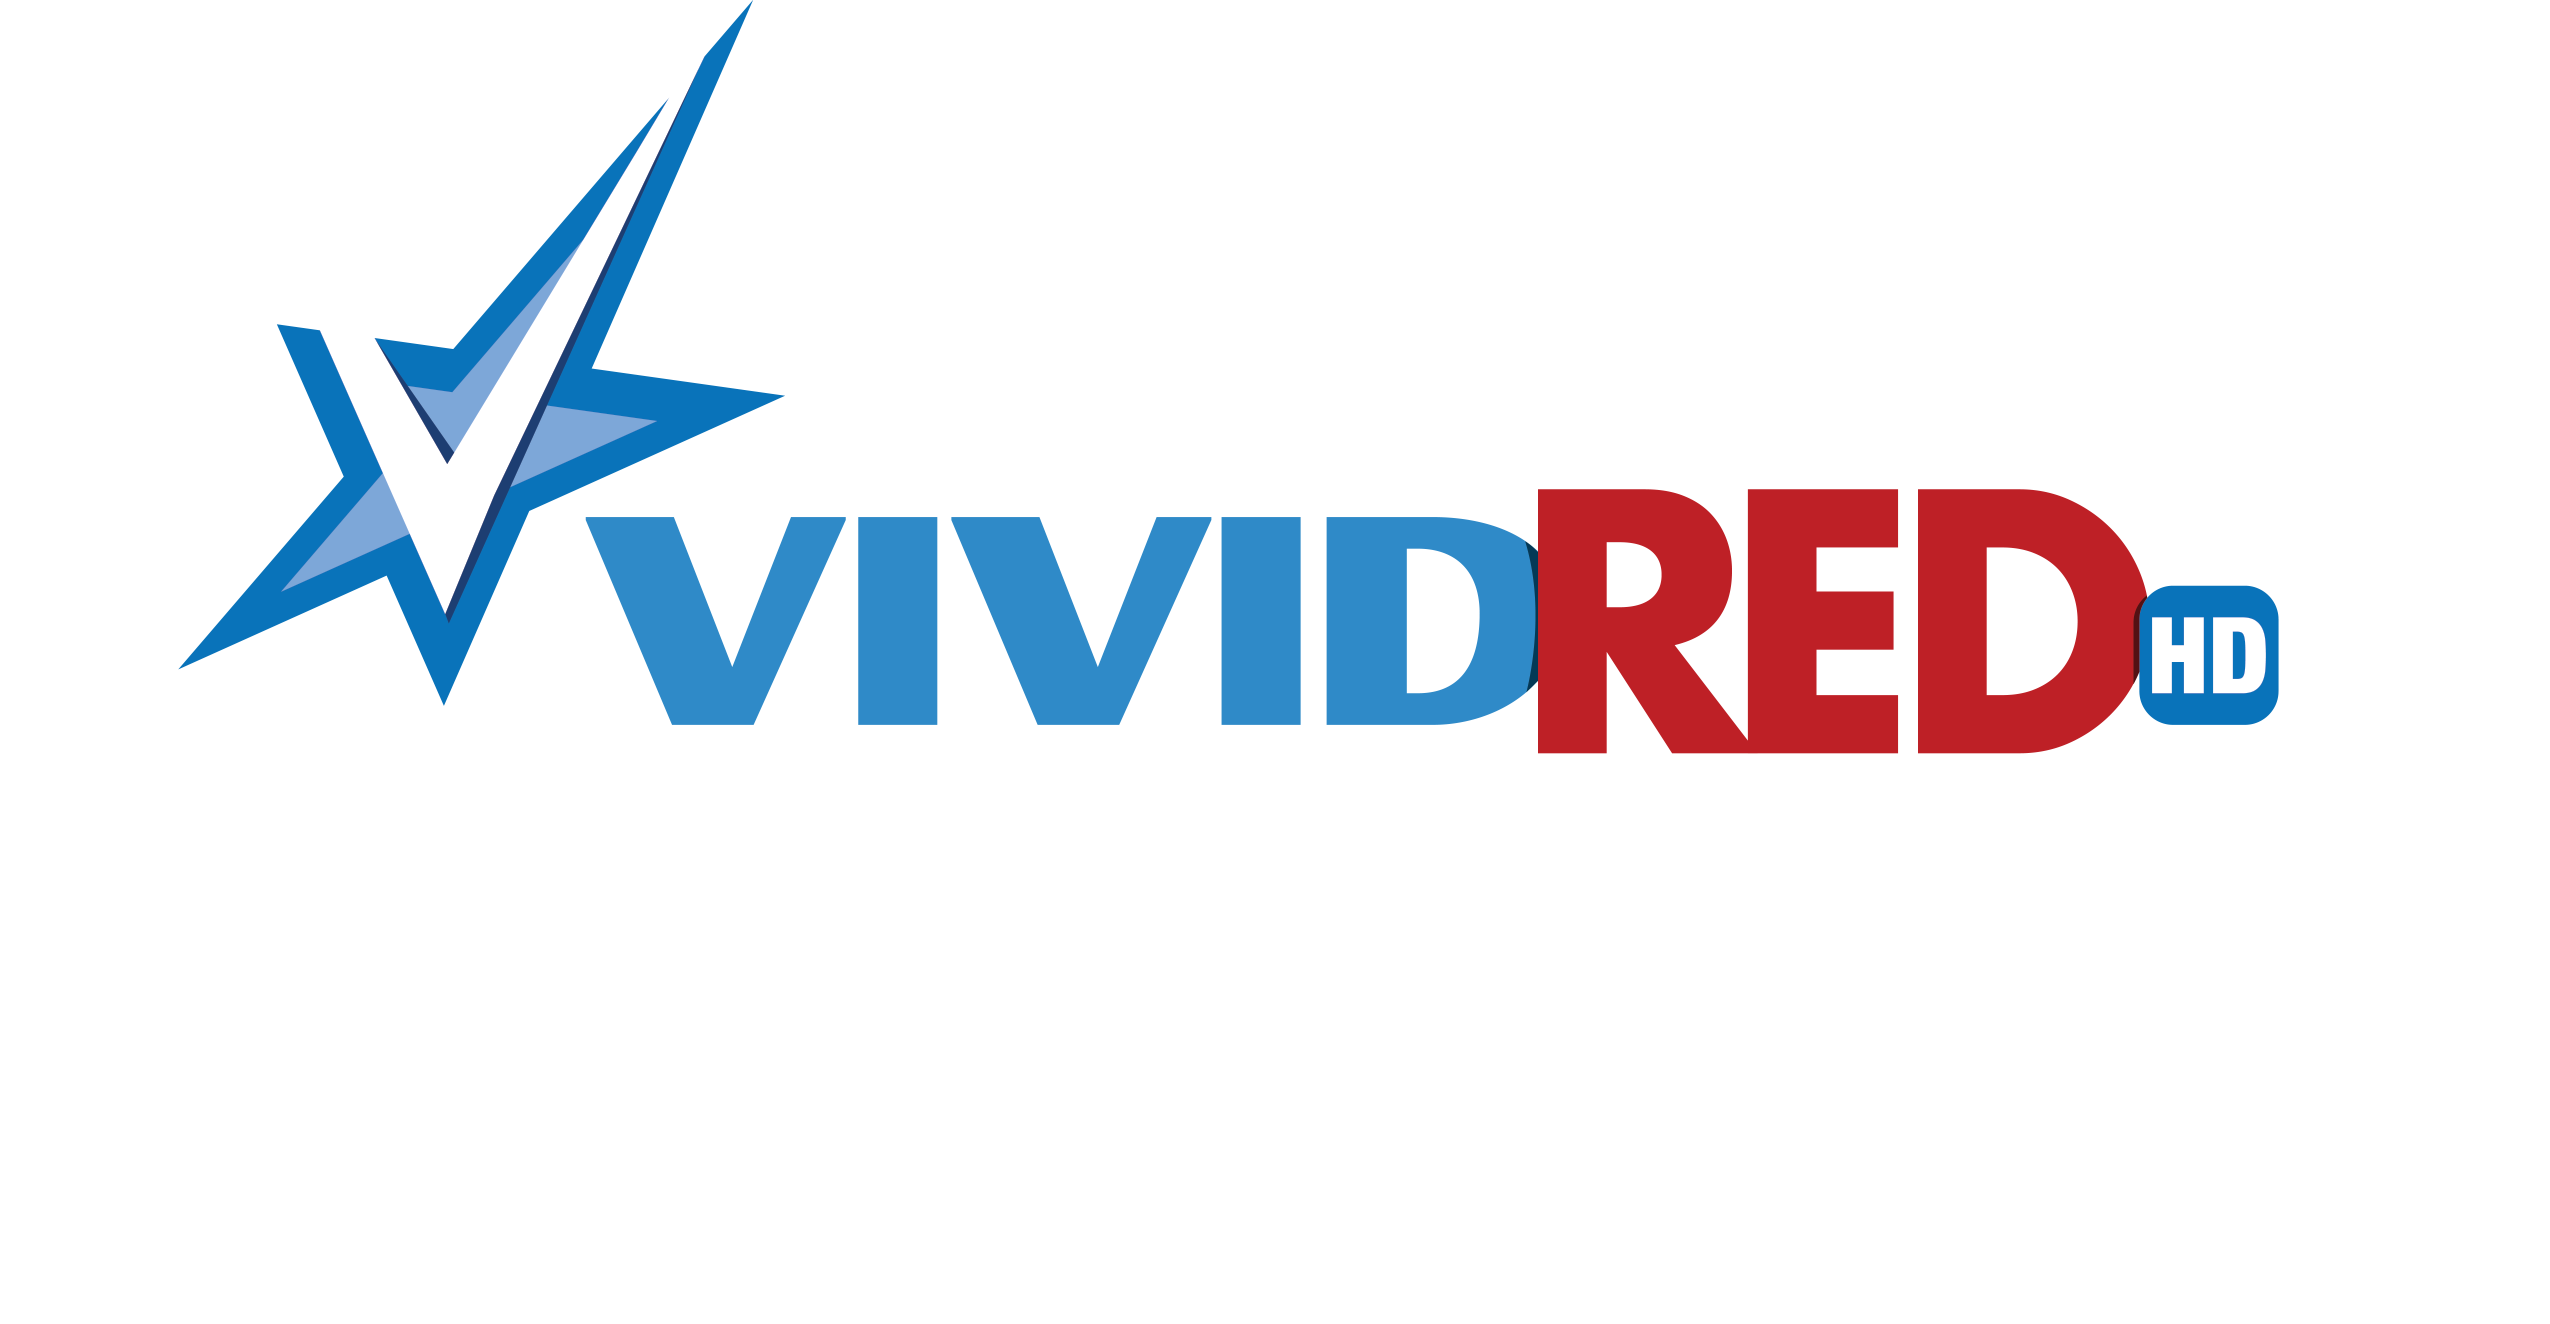 Vivid RED HD - Program TV